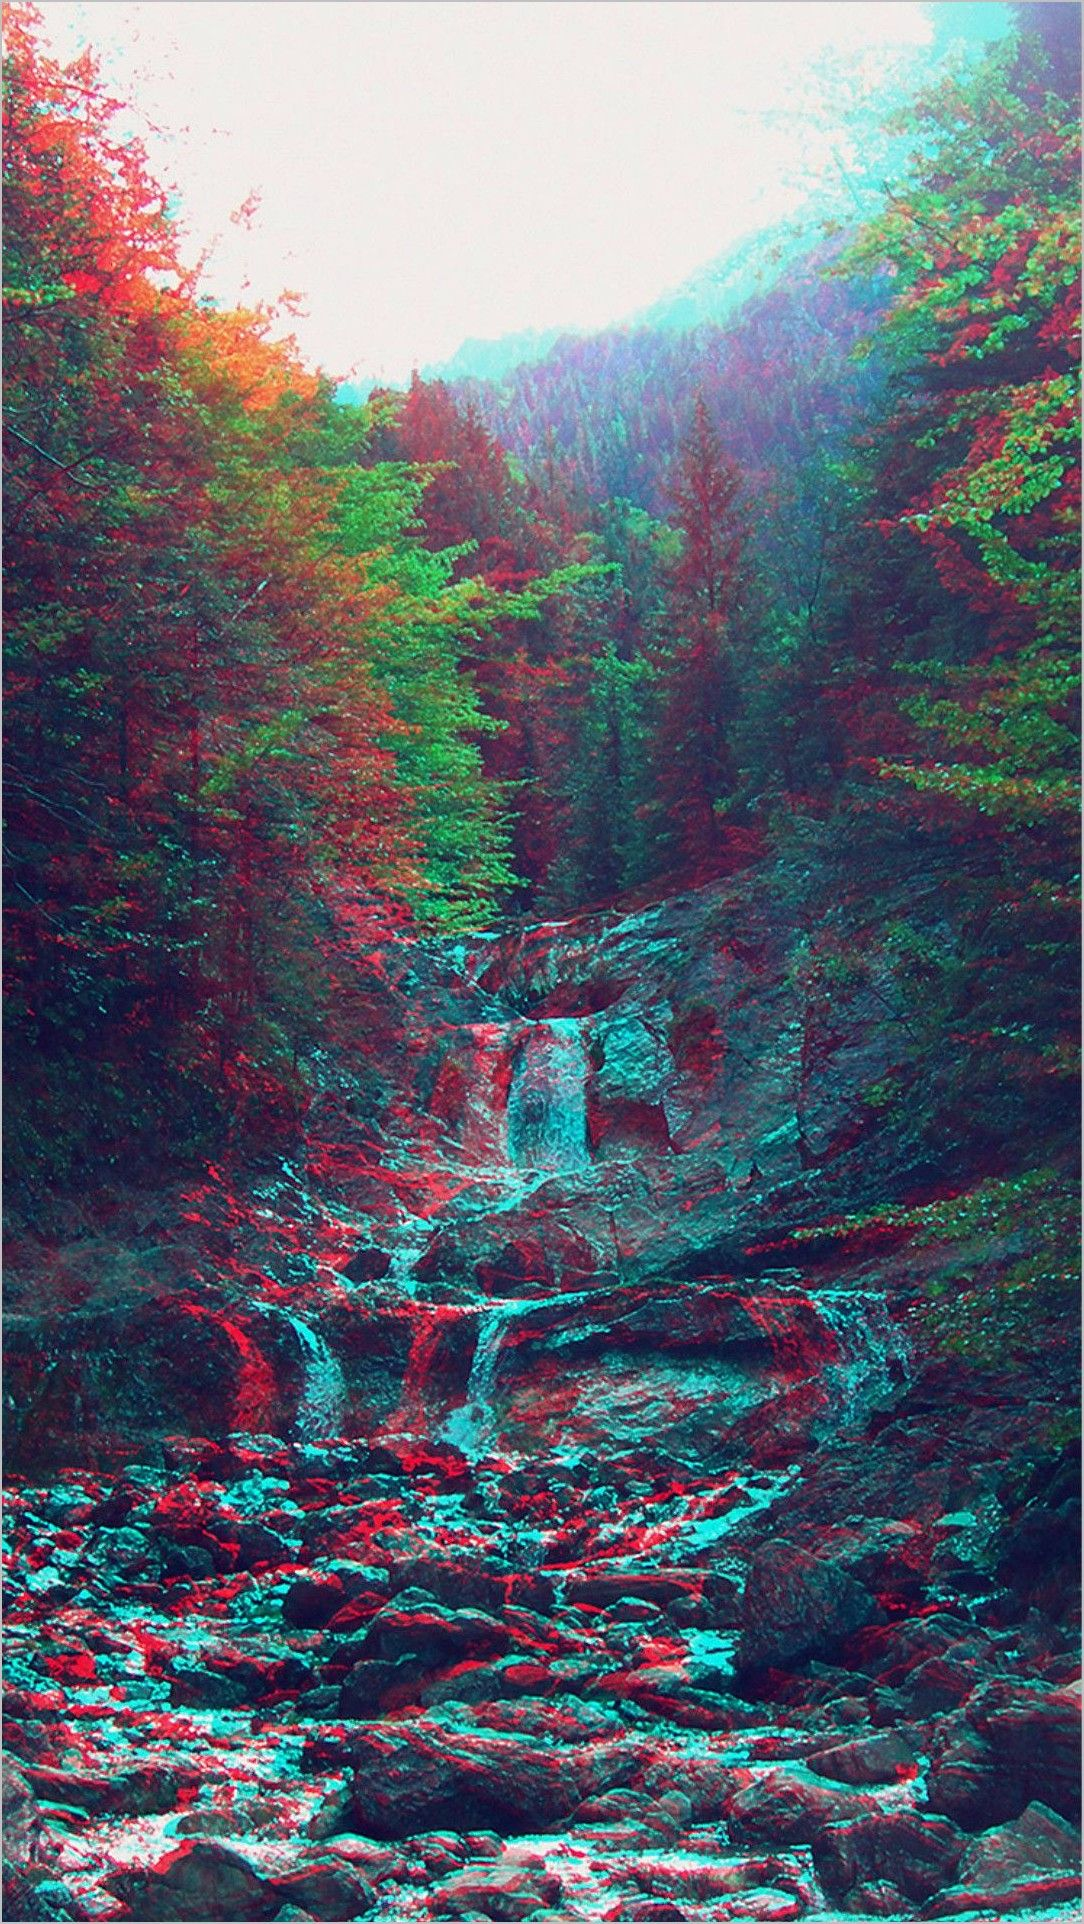 Best 4k Wallpapers Psy Shyco in 2020 Nature art, Trippy